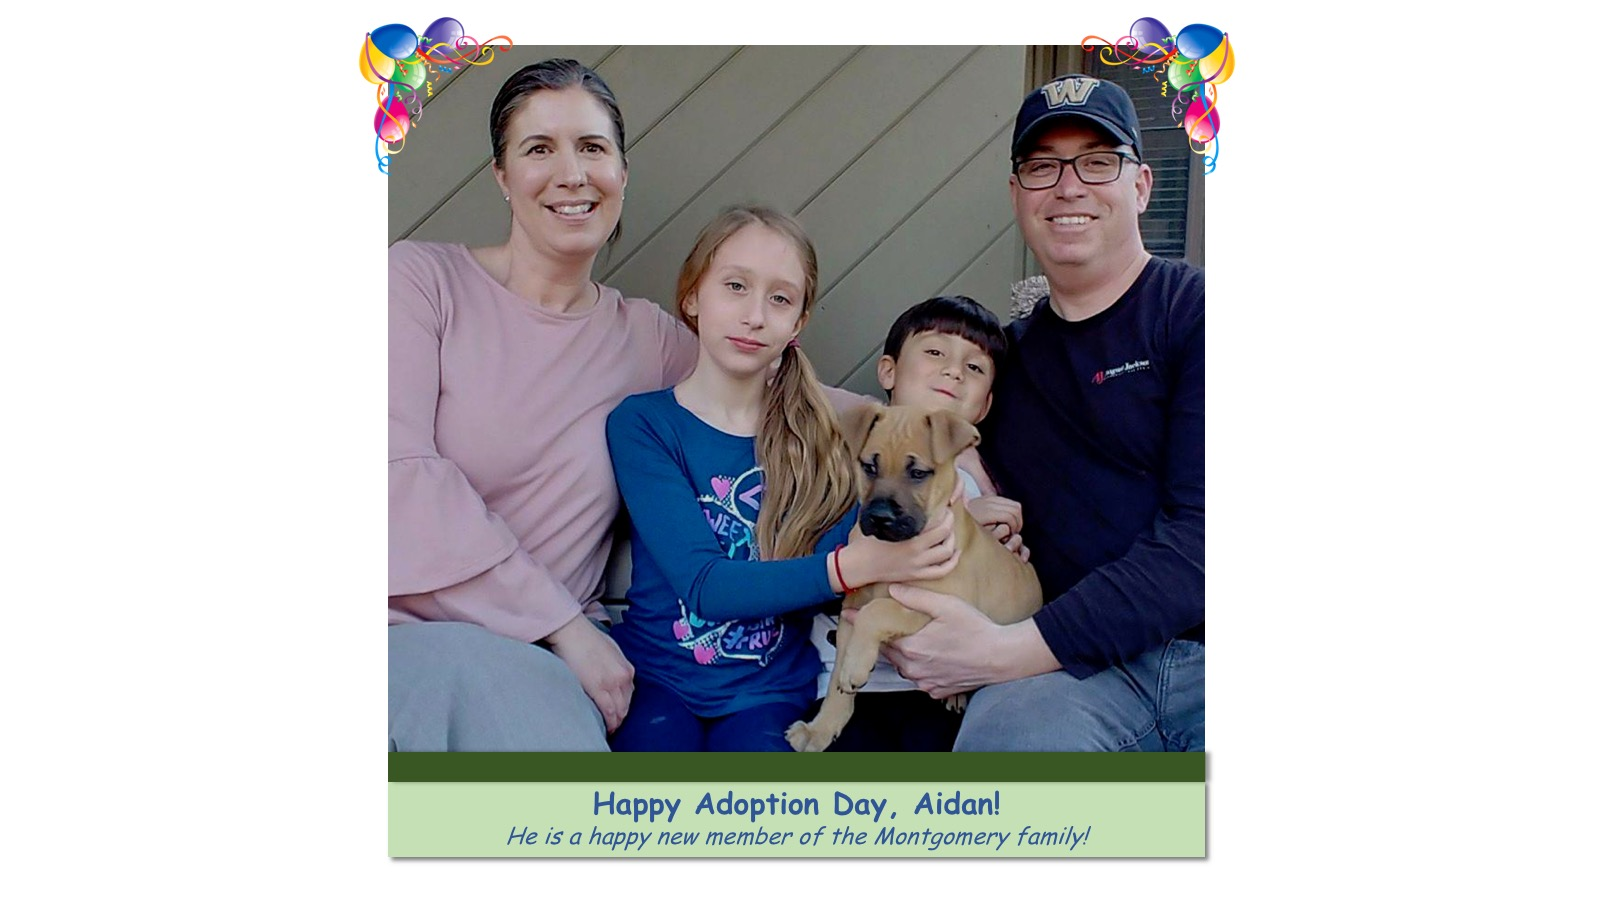 Aidan_Adoption_Photo_2018.jpg